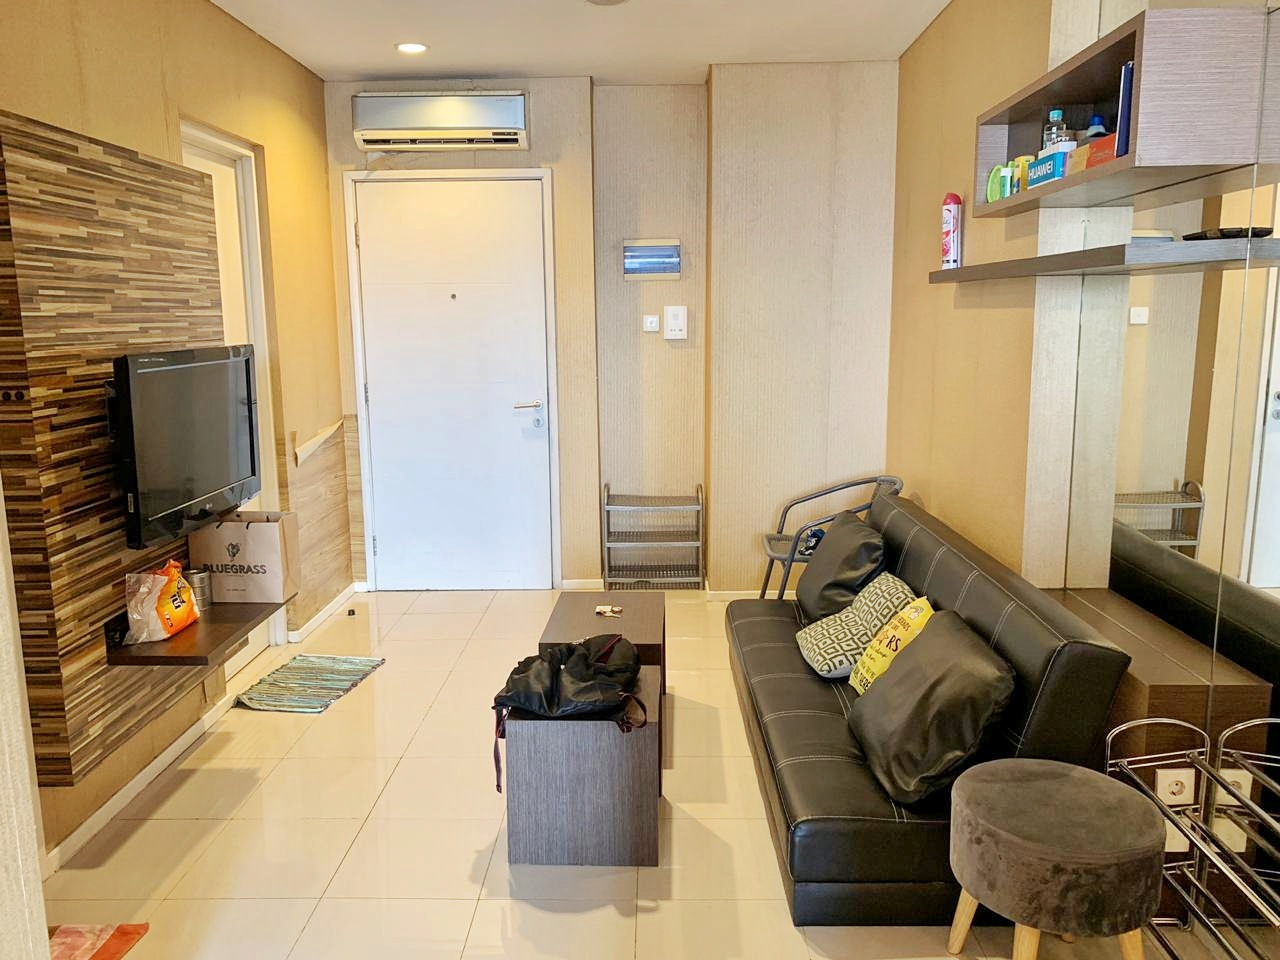 2 bedroom for rent near me